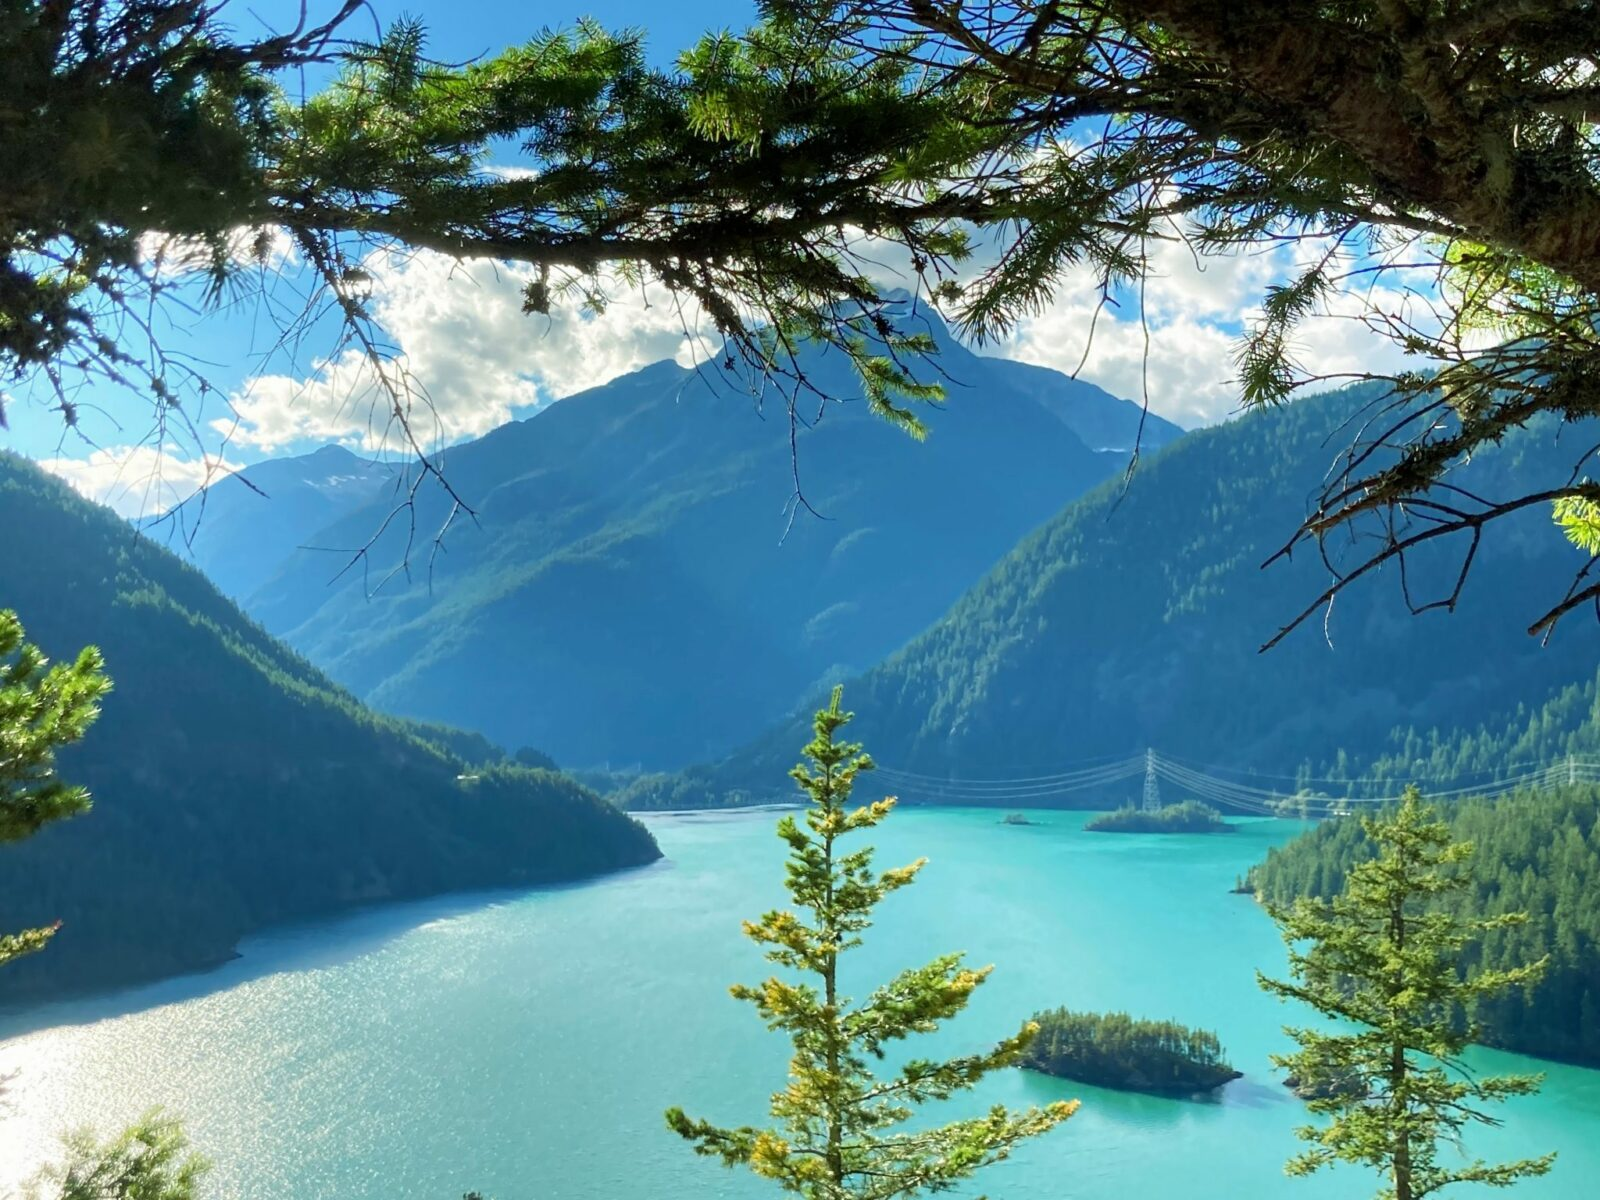 Diablo Lake, a turquoise lake in North Cascades National Park is far below and surrounded by forested hills. Power lines from the dam are in the distance. Tree branches are in the foreground